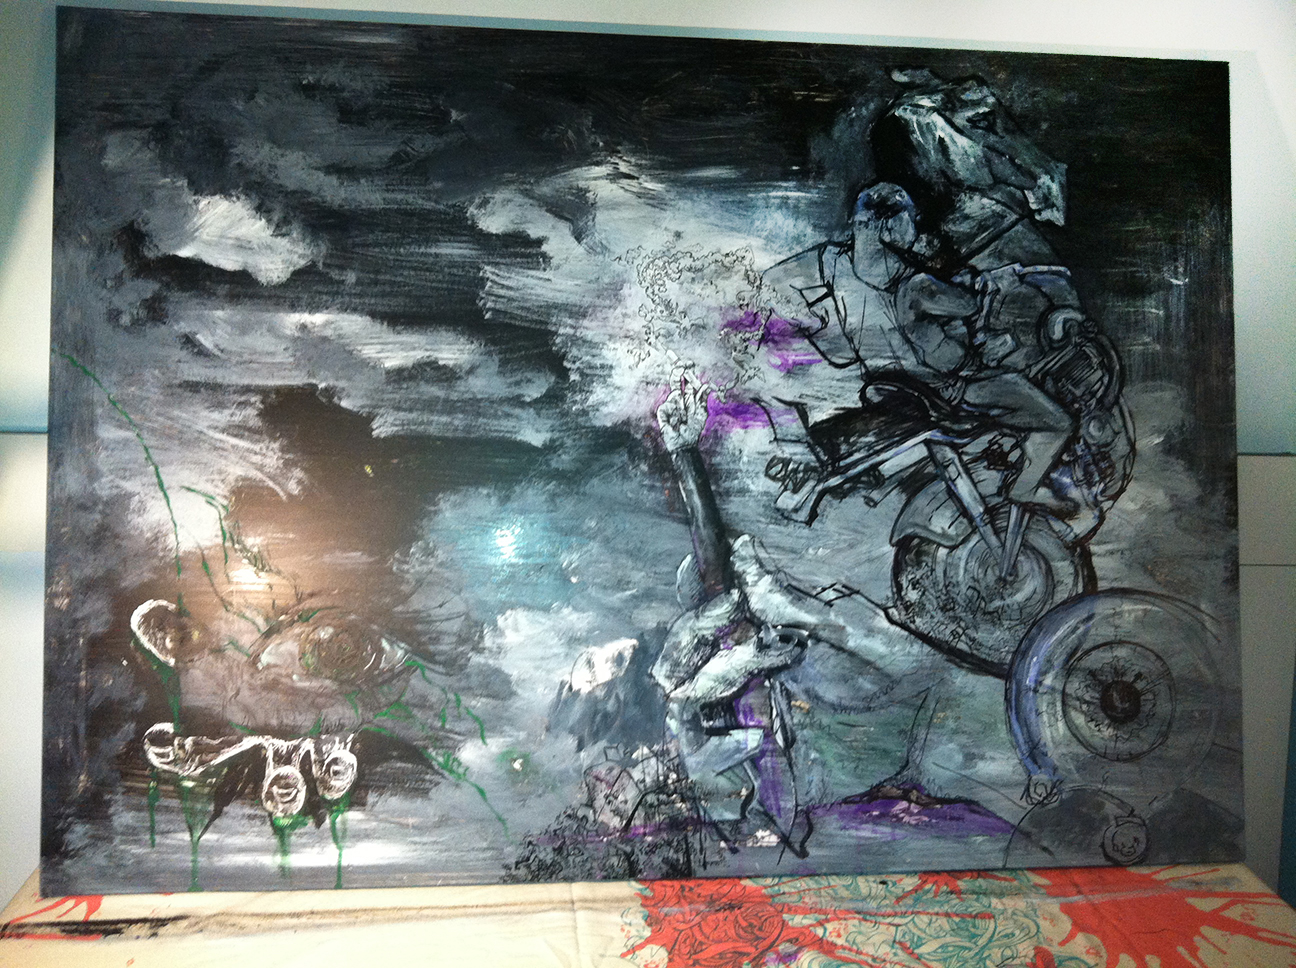 'Modern Knights' 1500 x 600mm, Mixed Media, 2012